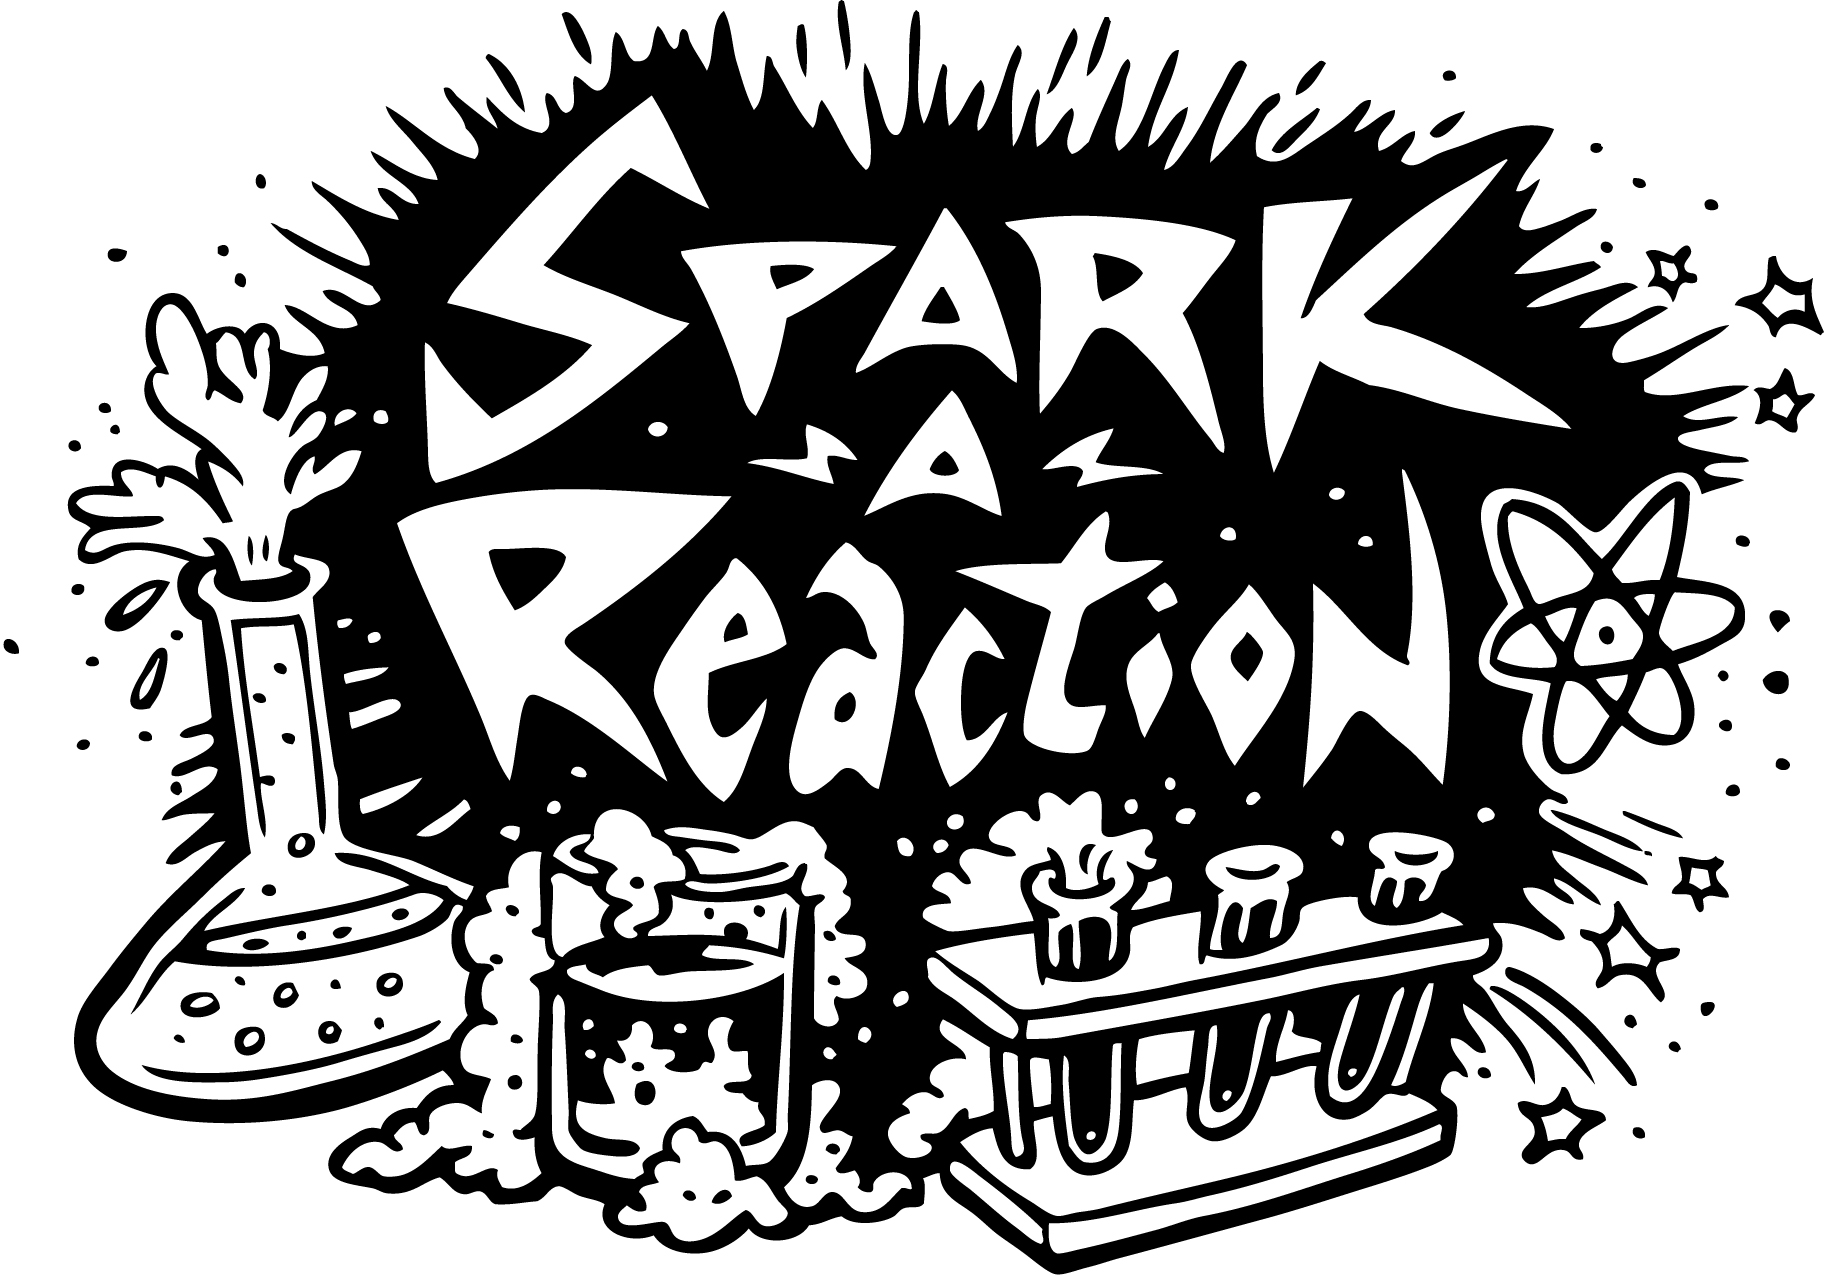 Spark a Reaction: 2014 Summer Reading challenge 6th-12th graders